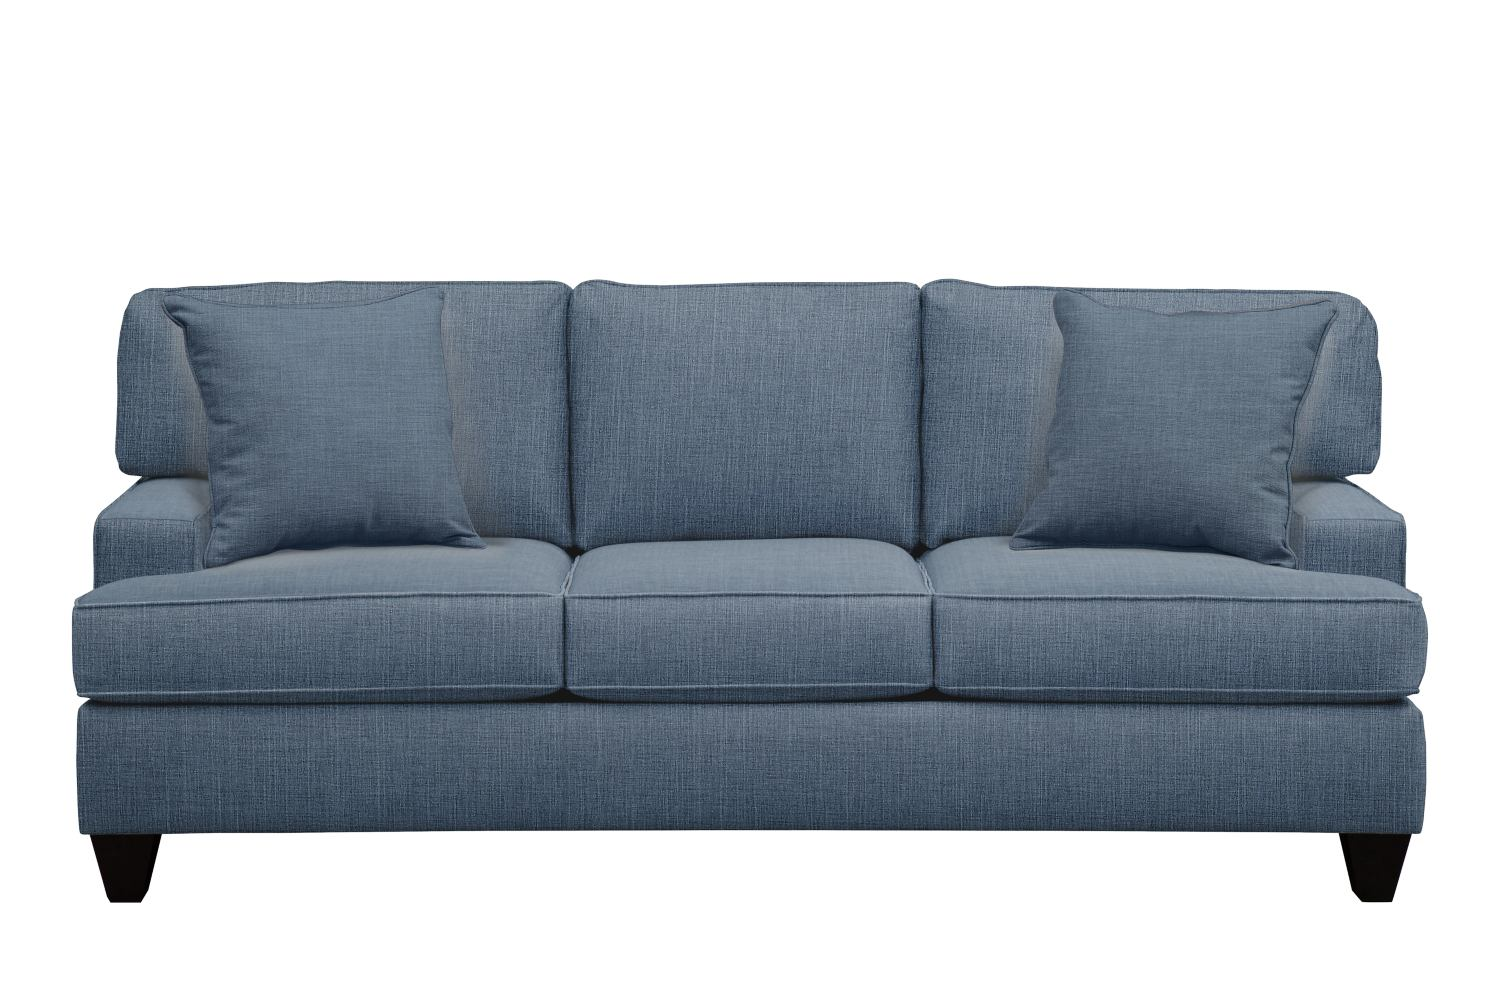 "Living Room Furniture - Conner Track Arm Sofa 87"" Milford II Indigo  w/ Milford II Indigo Pillow"